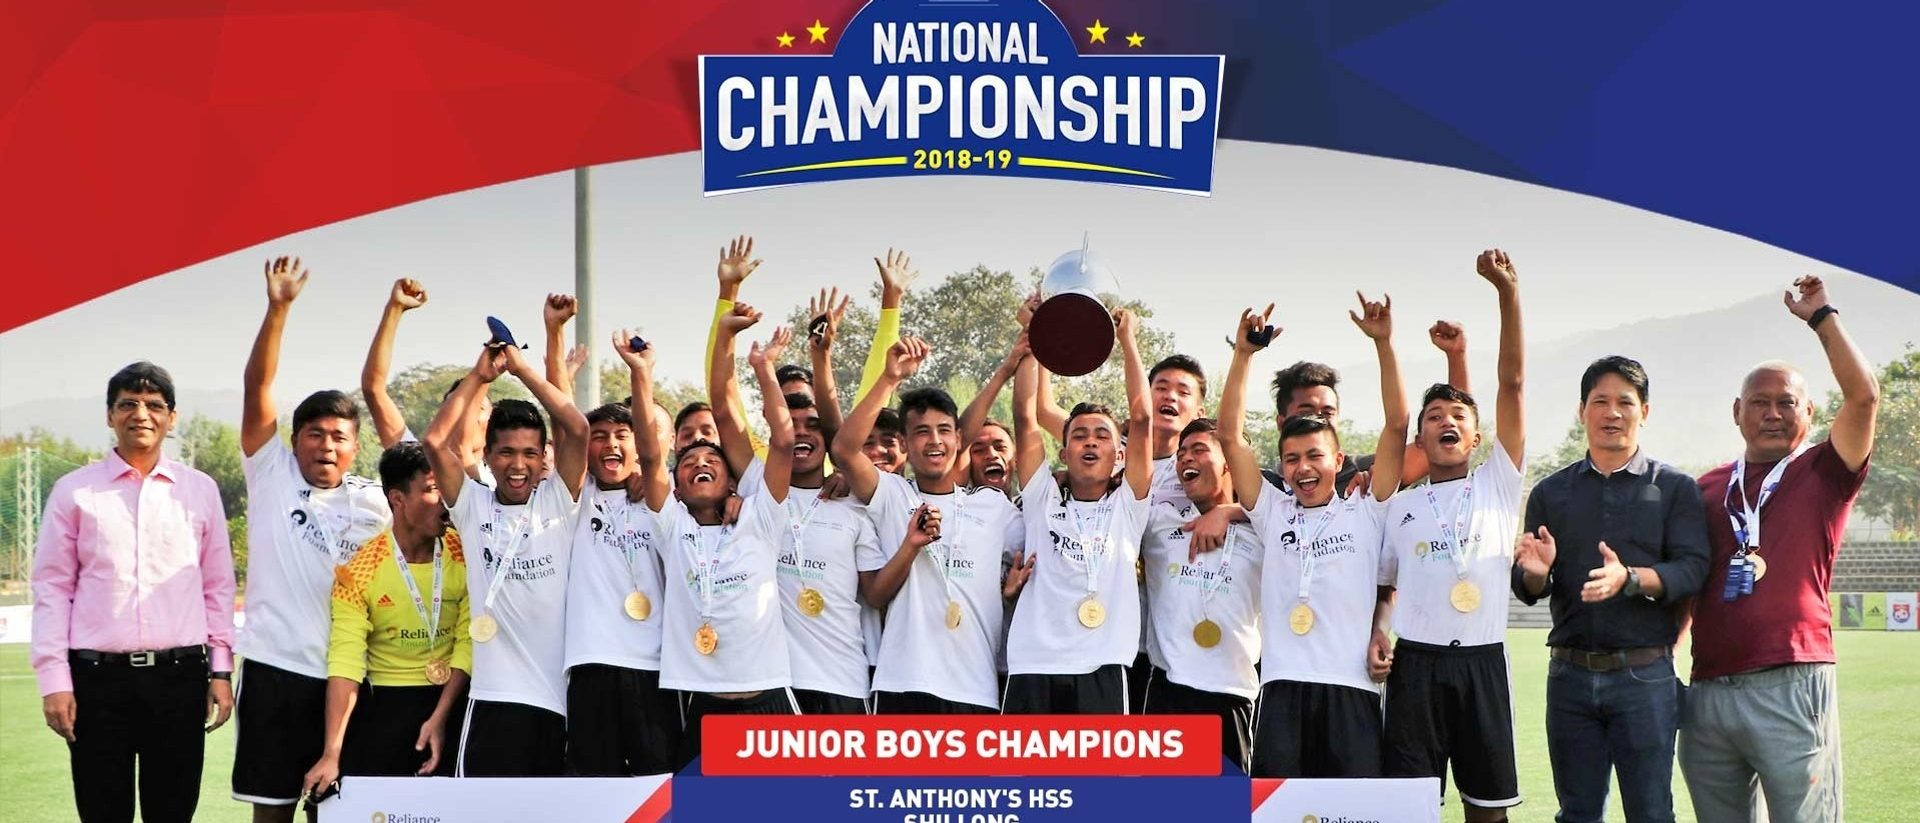 RFYS National Championship Finals: Match 1